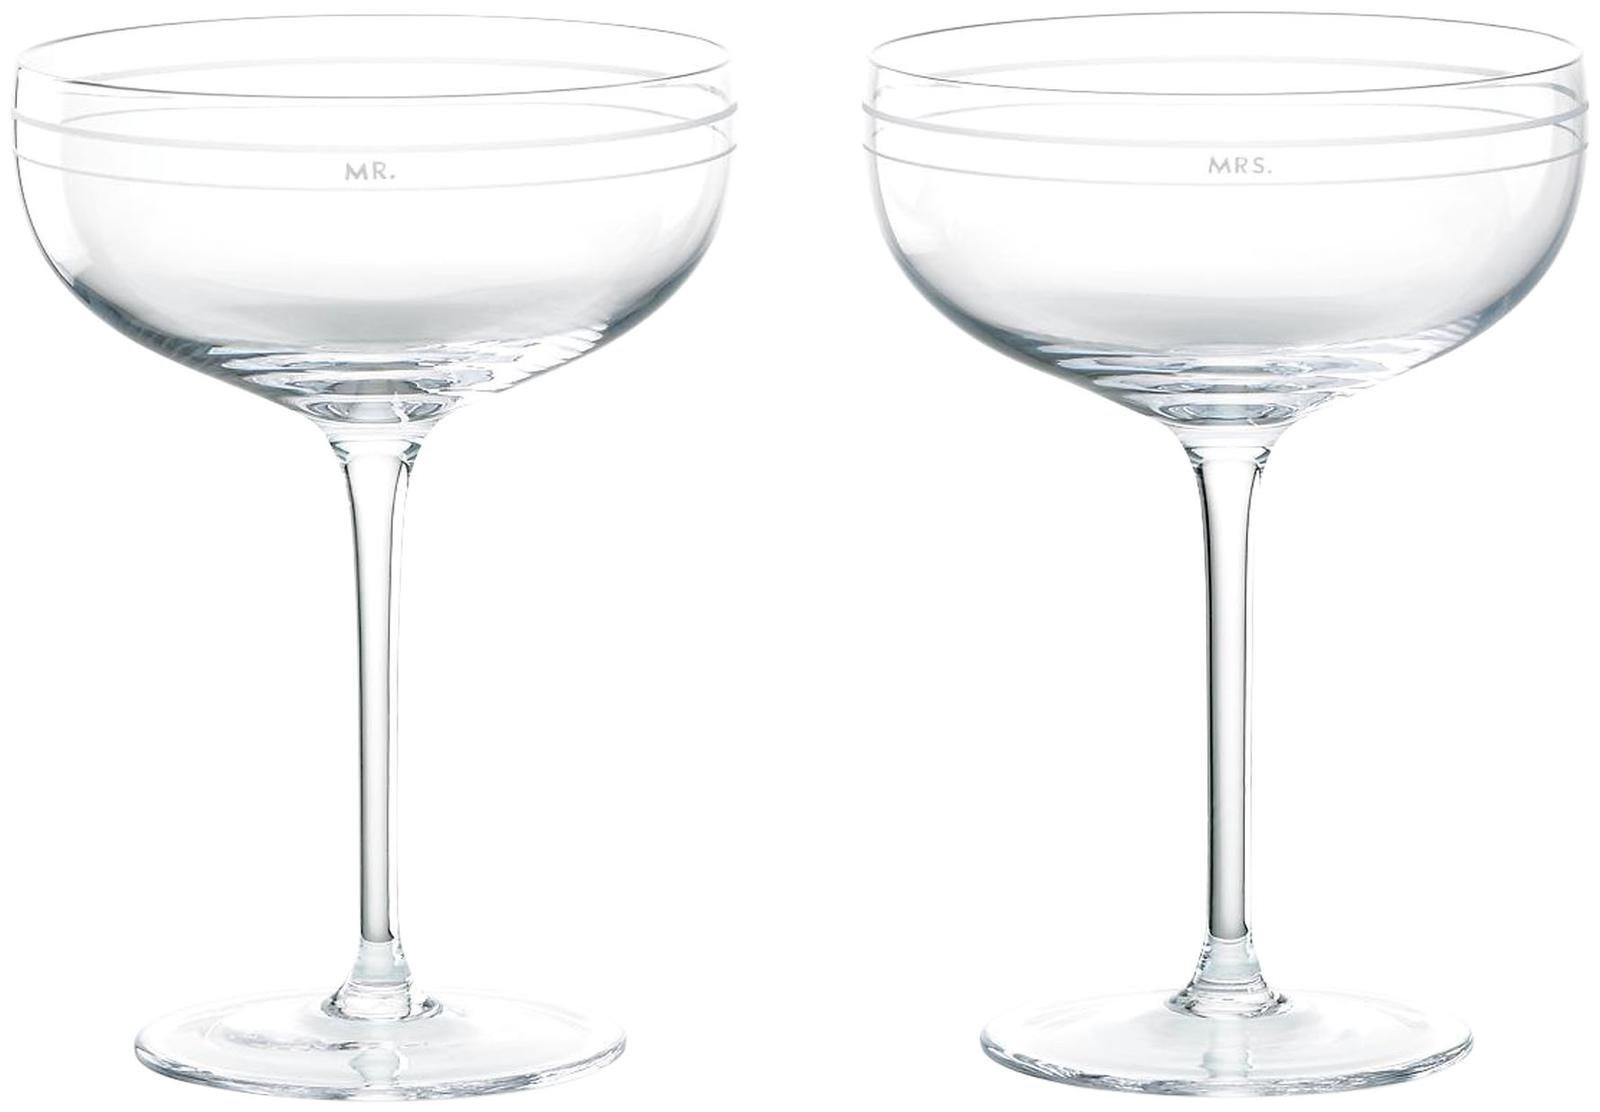 Kate Spade New York Darling Point Mr. and Mrs. Crystal Saucer Champagne Glasses, Pair